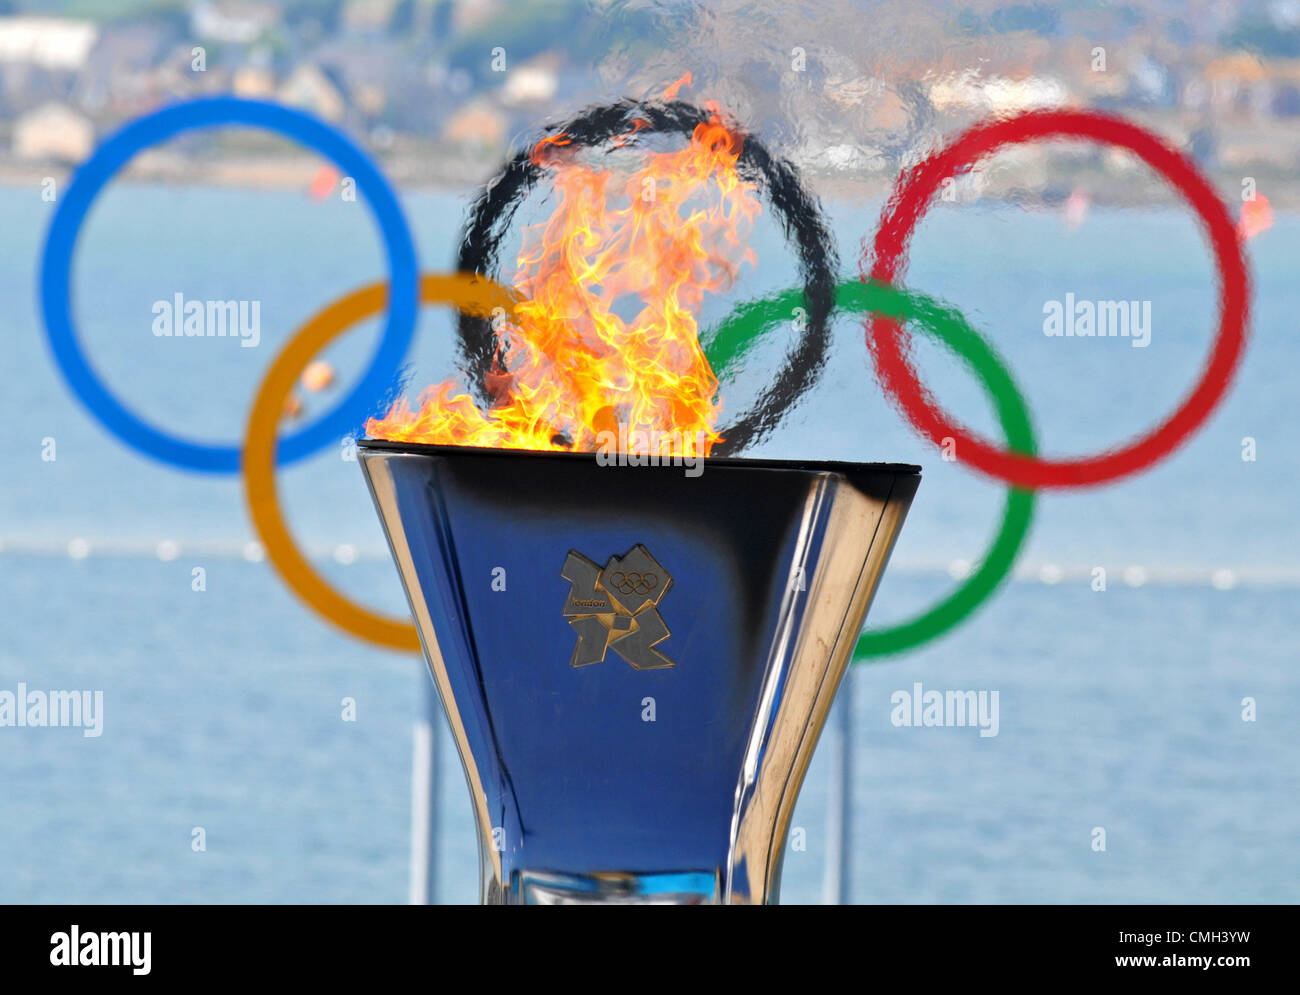 9th Aug 2012. London 2012 Olympics: Sailing. London 2012 Olympic Games at the Weymouth & Portland Venue, Dorset, - Stock Image